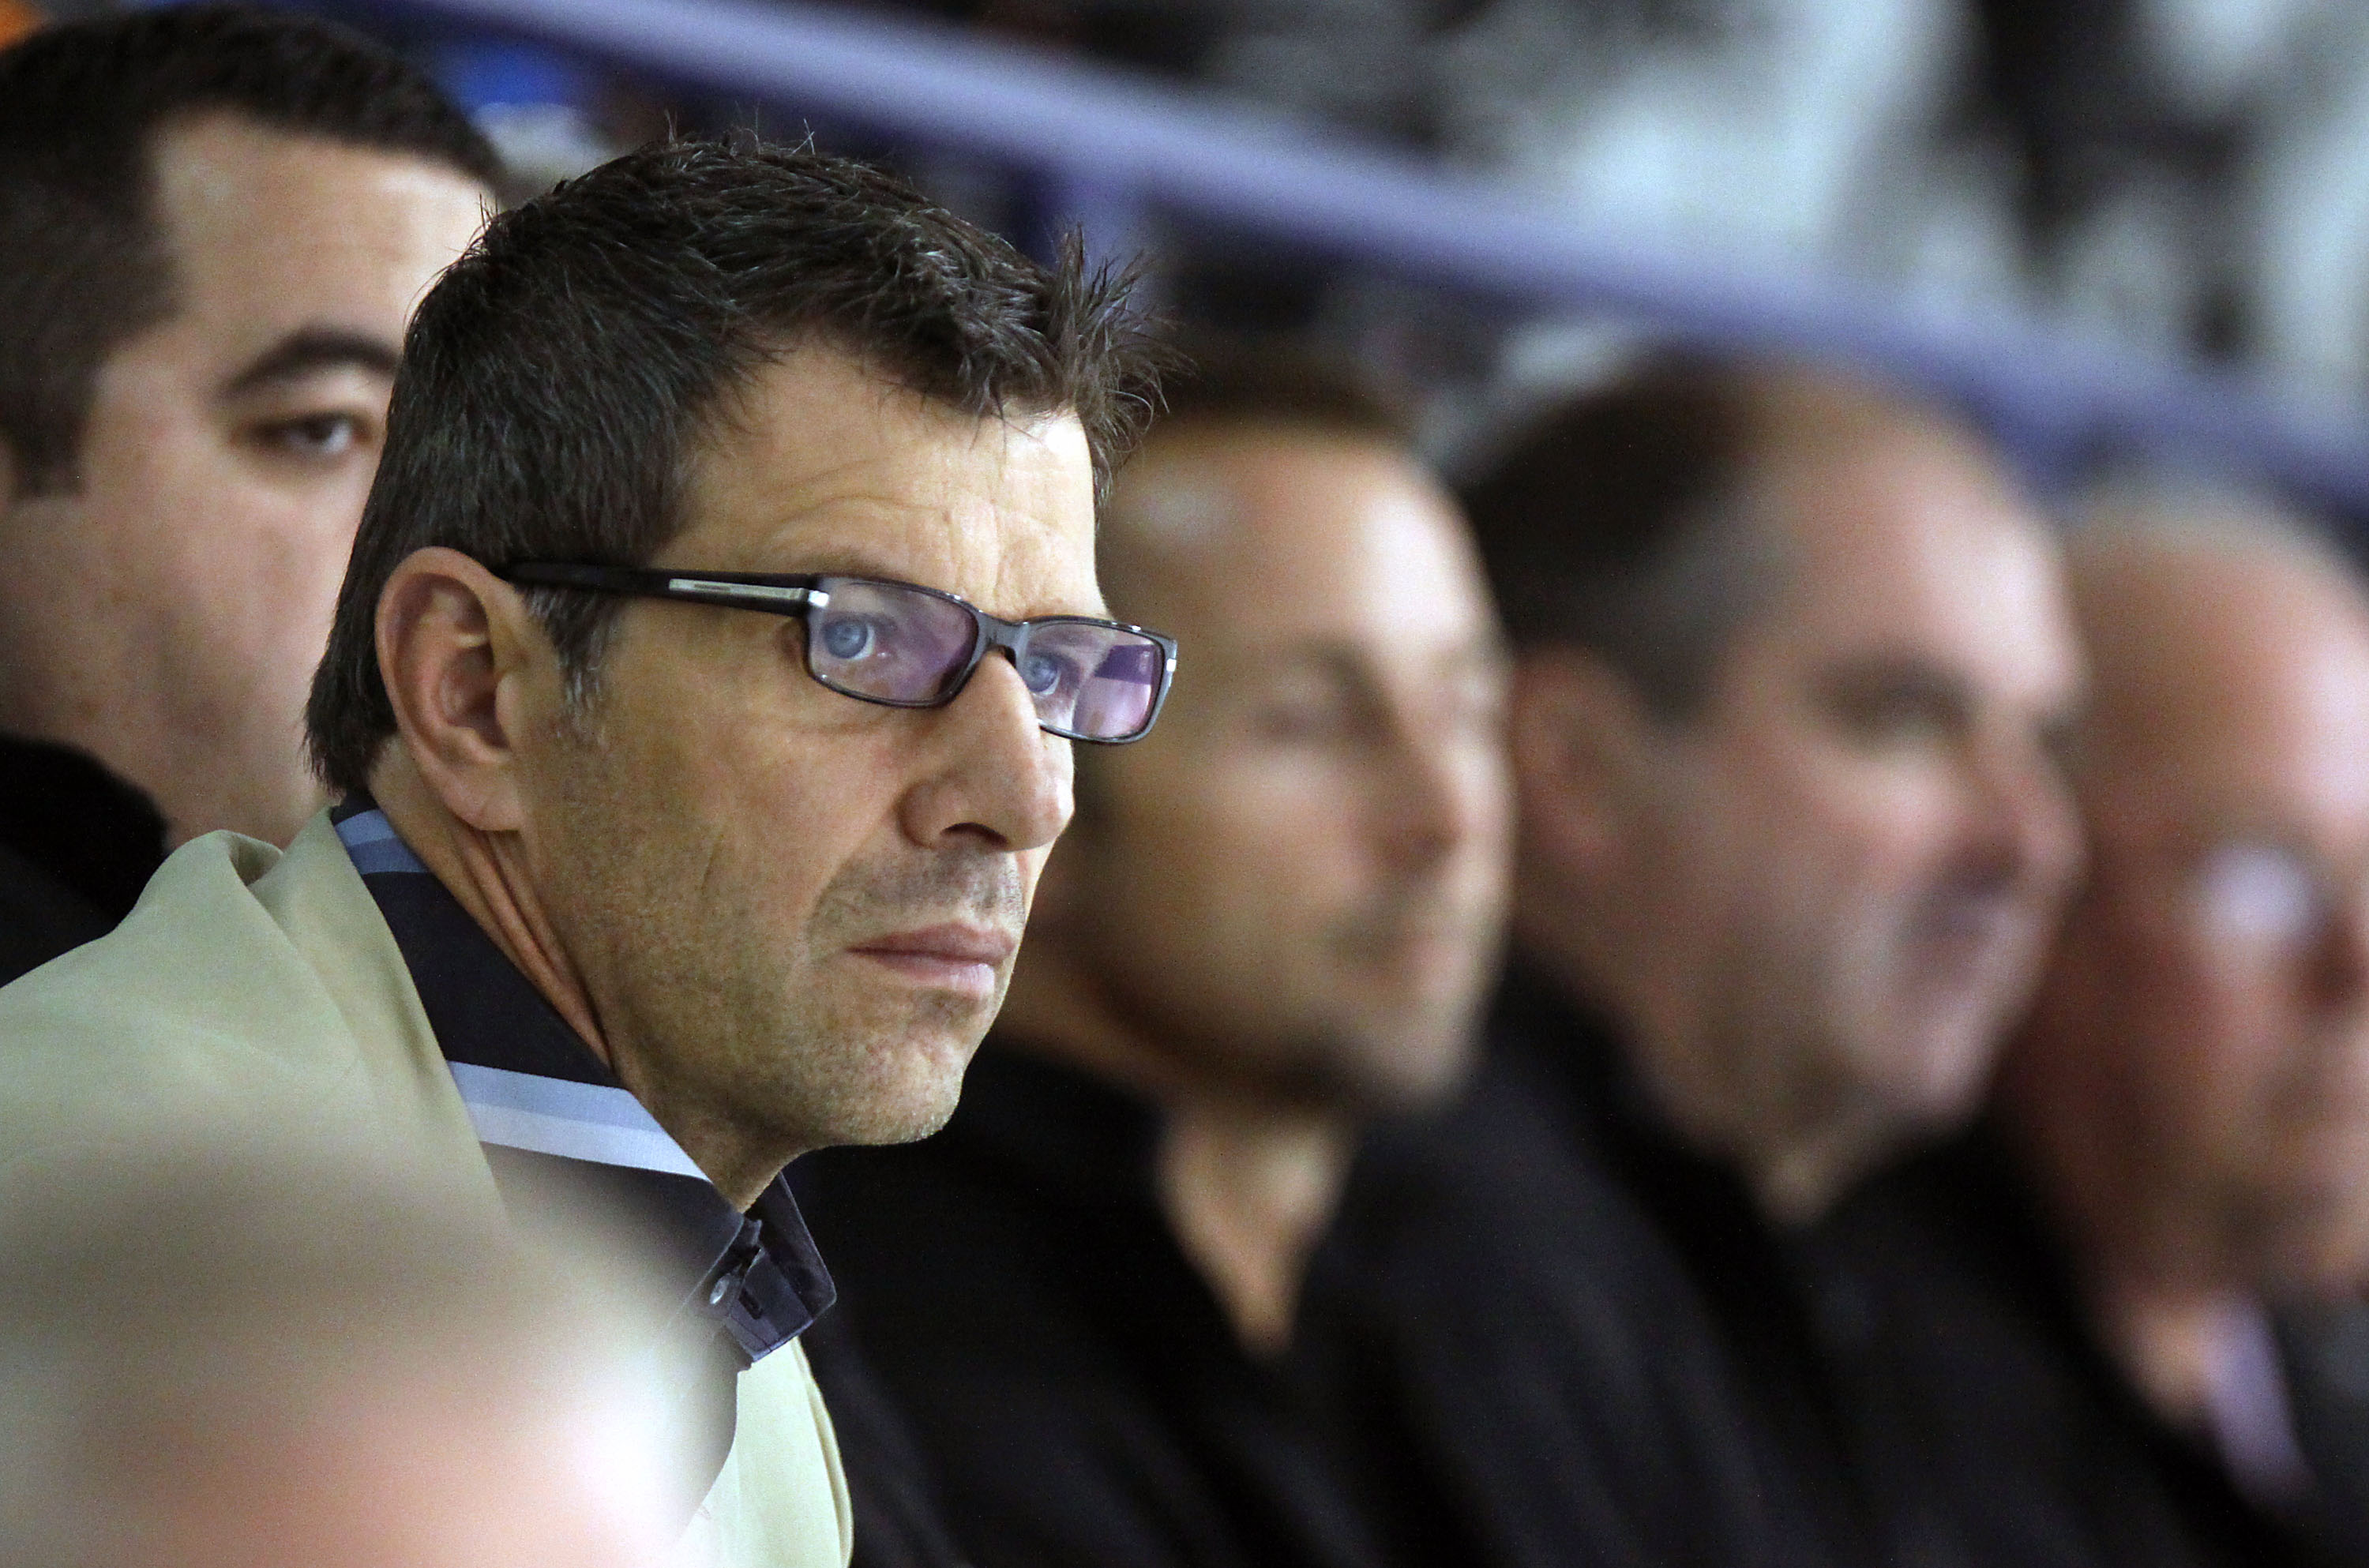 Marc_bergevin_management_team